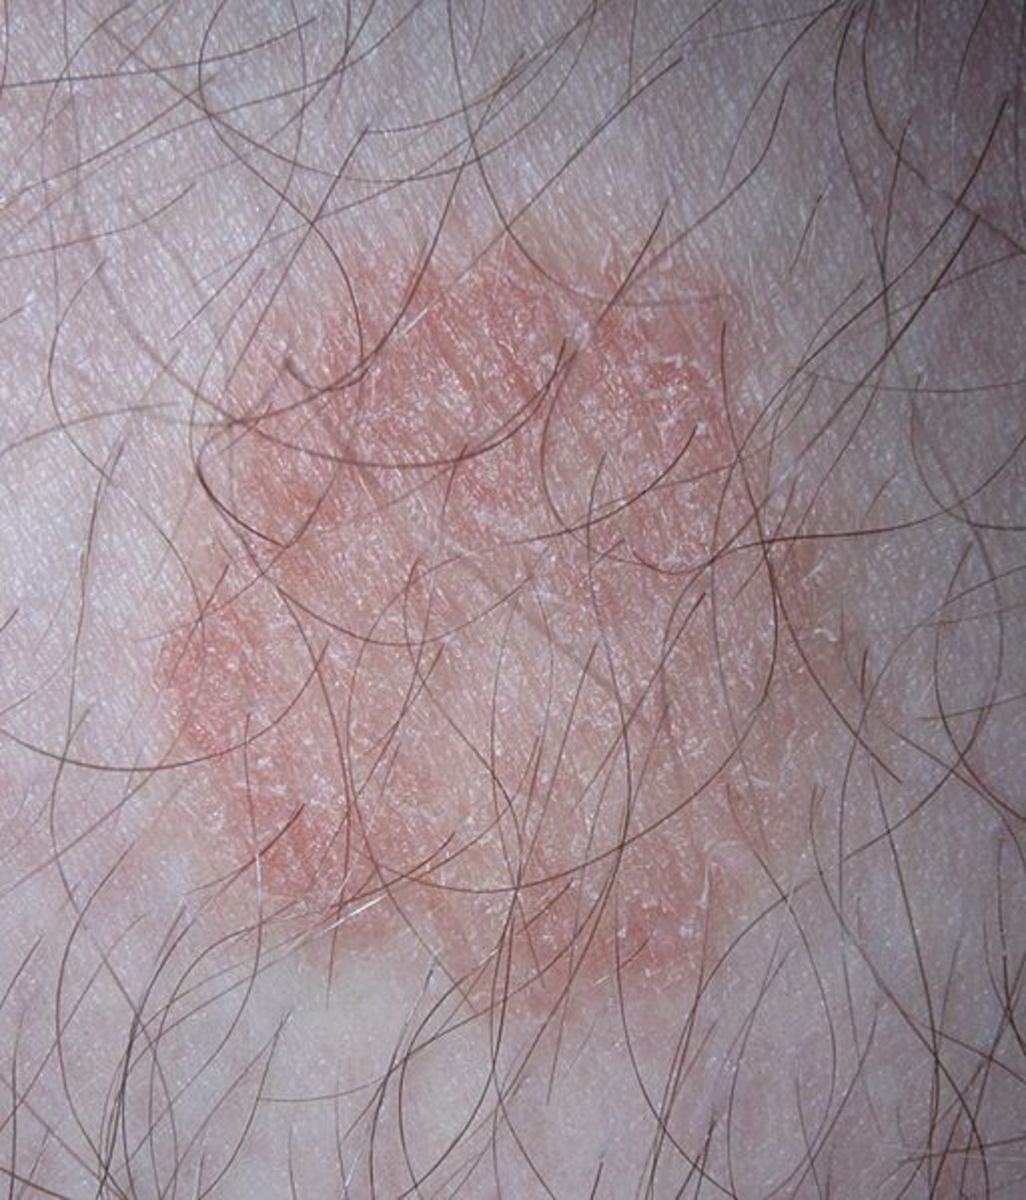 Ringworm on a male leg.